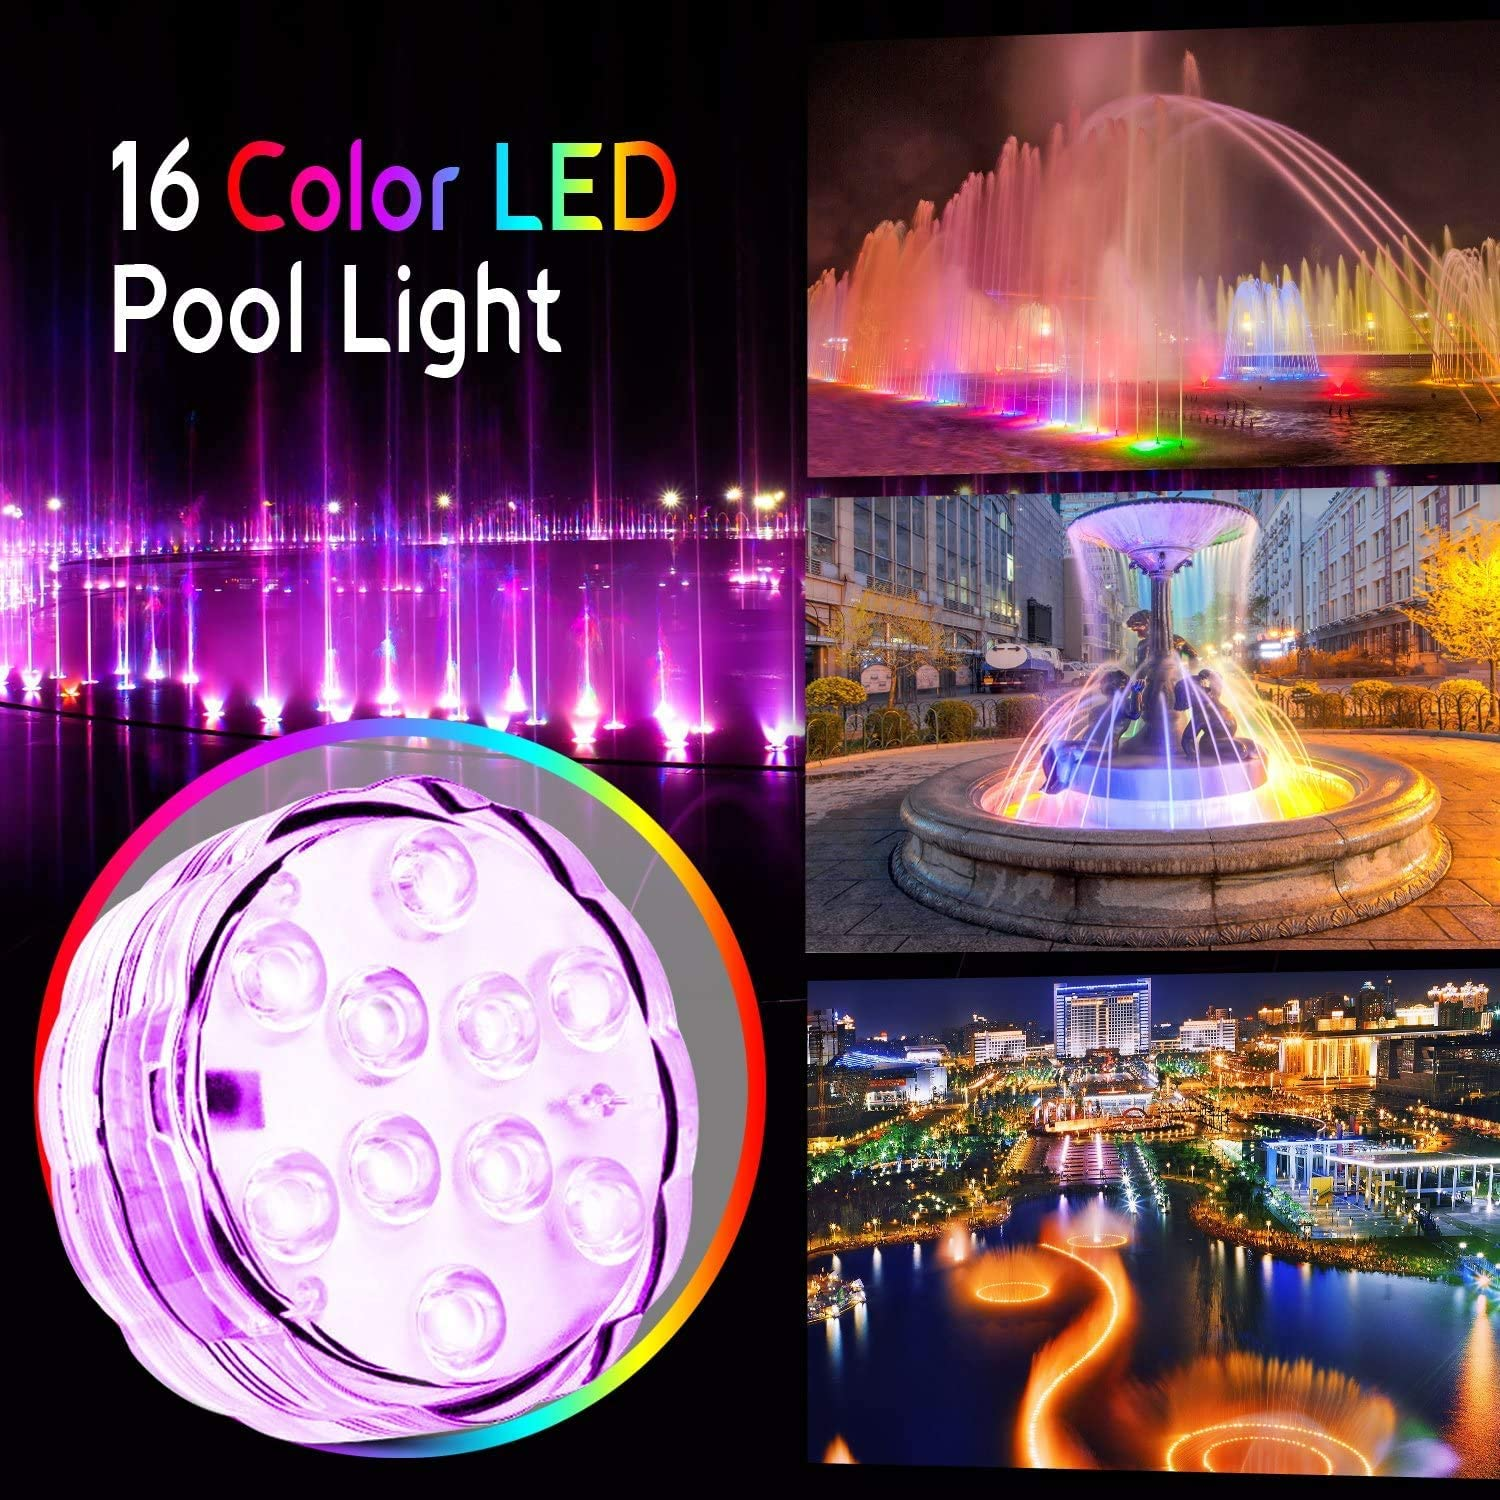 Pool Vase Party hanstend Swiming Pool LED Light with Remote,4Packs Underwater Fountain Lights Submersible Led Lights for Aquarium Base Wedding Pond Garden Hot Tub